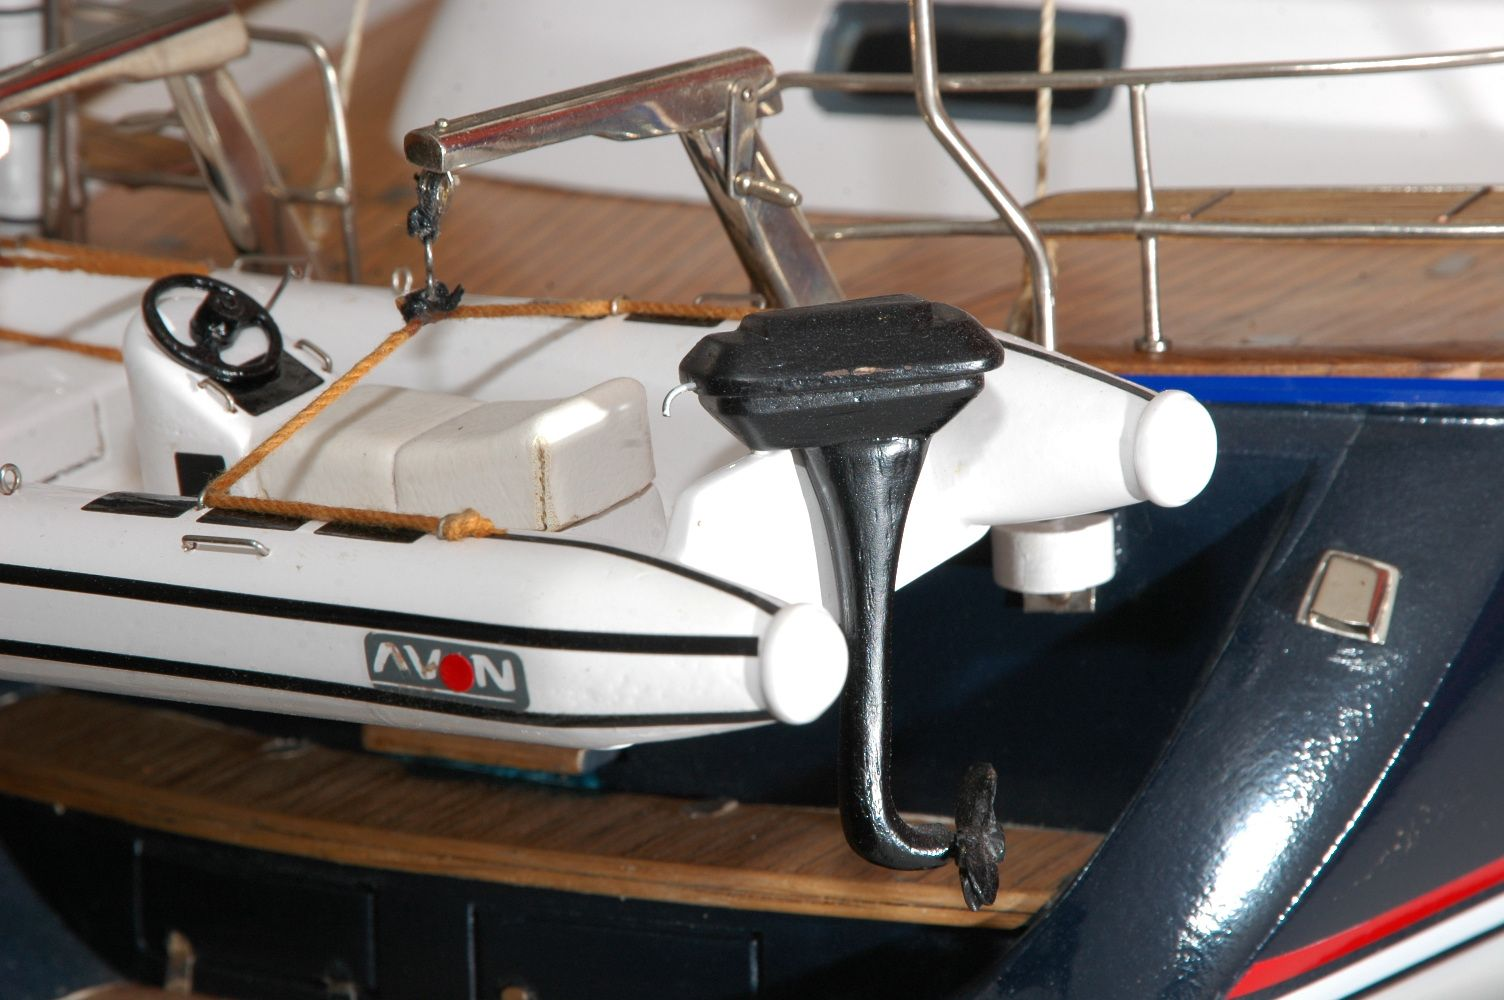 555-6279-Discovery-55-model-yacht